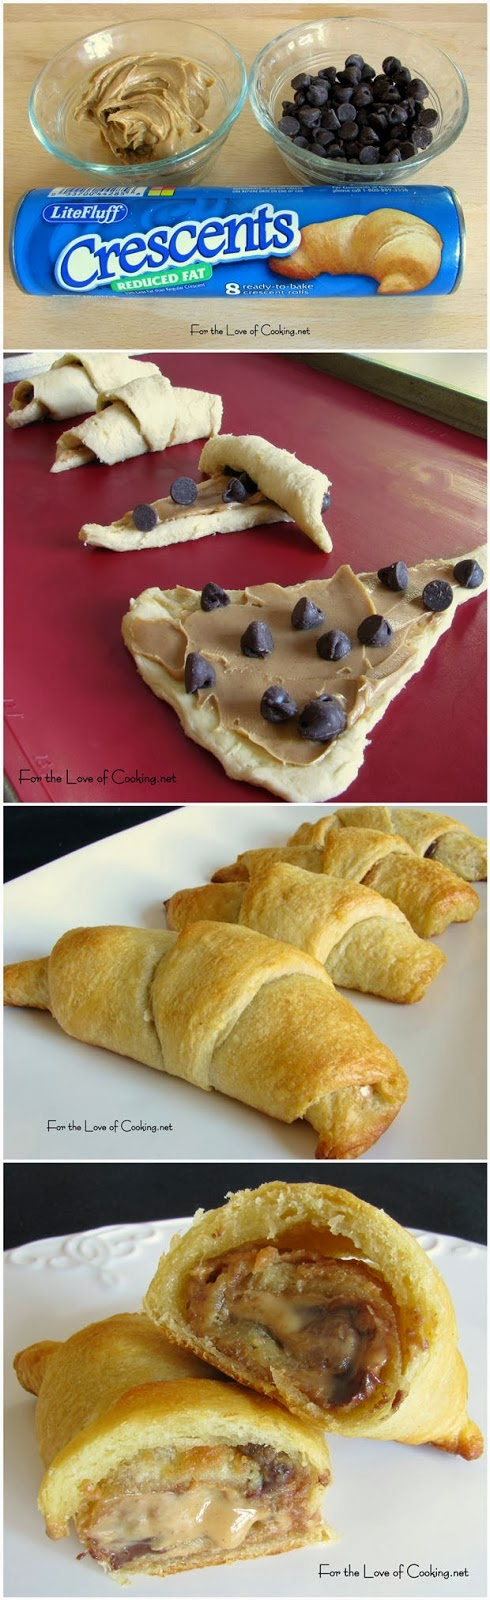 Crescent Rolls With Chocolate Chips And Peanut Butter